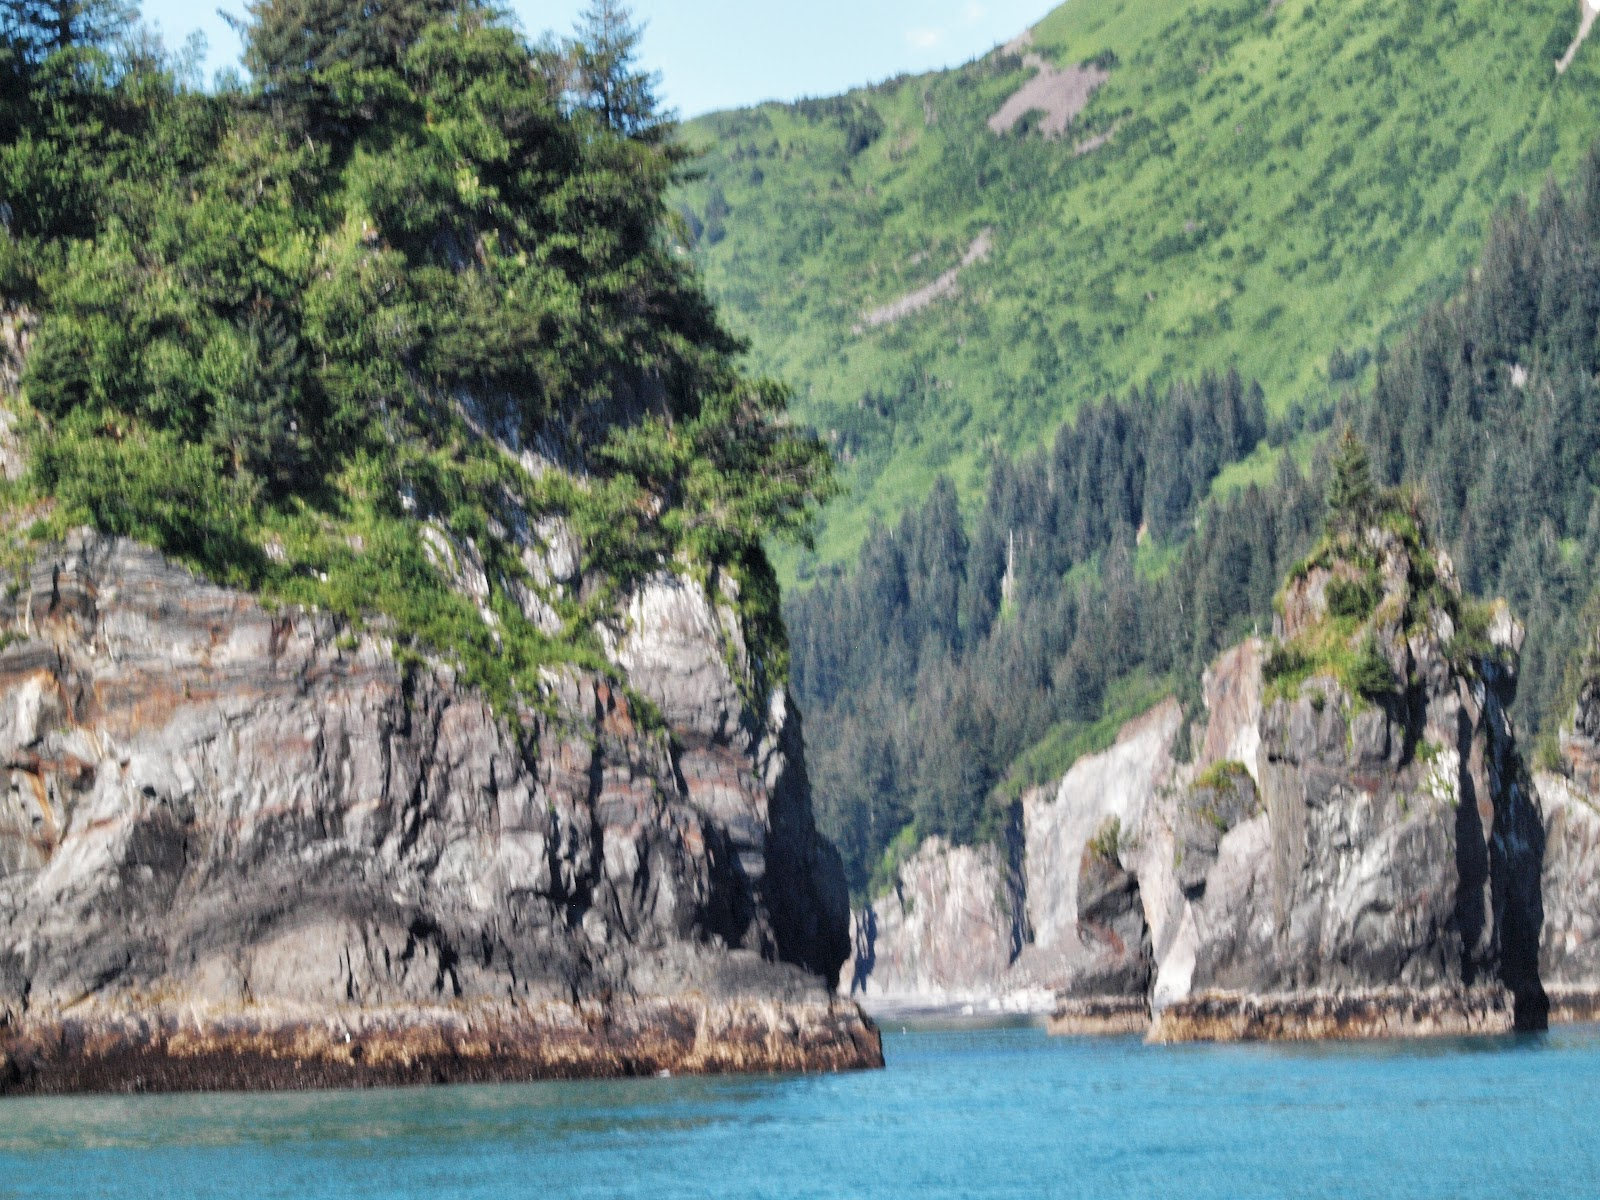 Pillar Point, Harding Gateway Area #Alaska #resurrectionbay #hardinggatewayarea #pillarpoint 2013